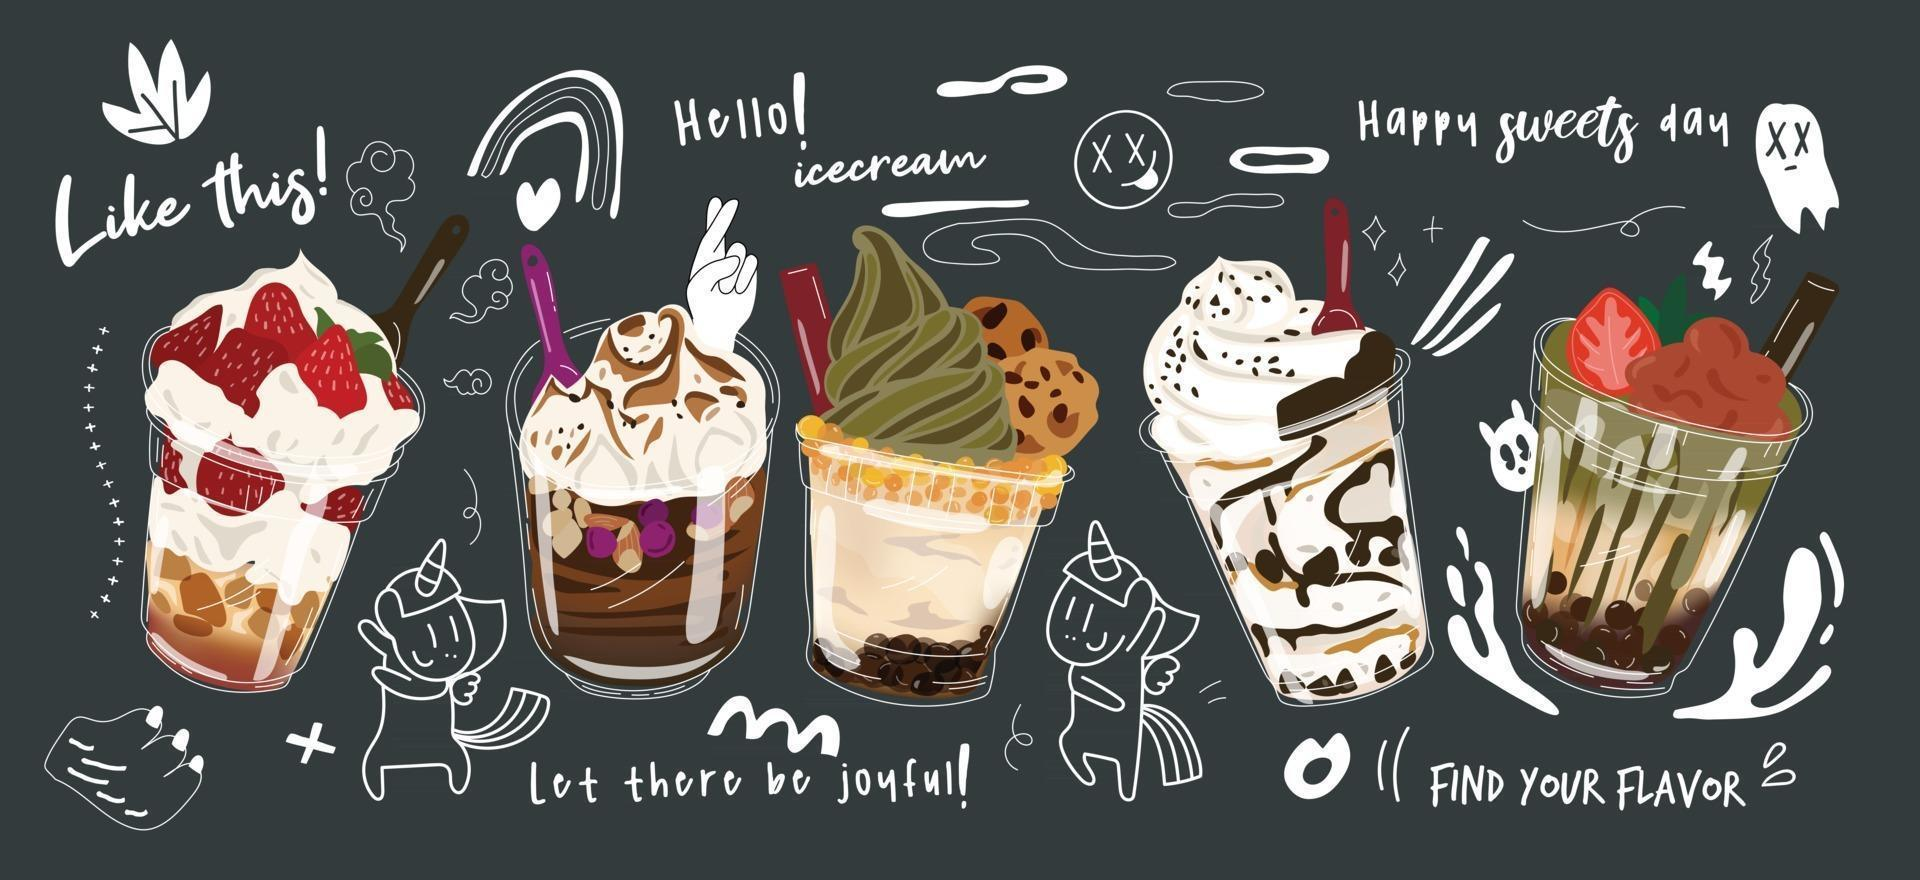 Bubble milk tea Special Promotions design, Boba milk tea, Pearl milk tea , Yummy drinks, coffees and soft drinks with logo and cute funny doodle style advertisement banner. Vector illustration.